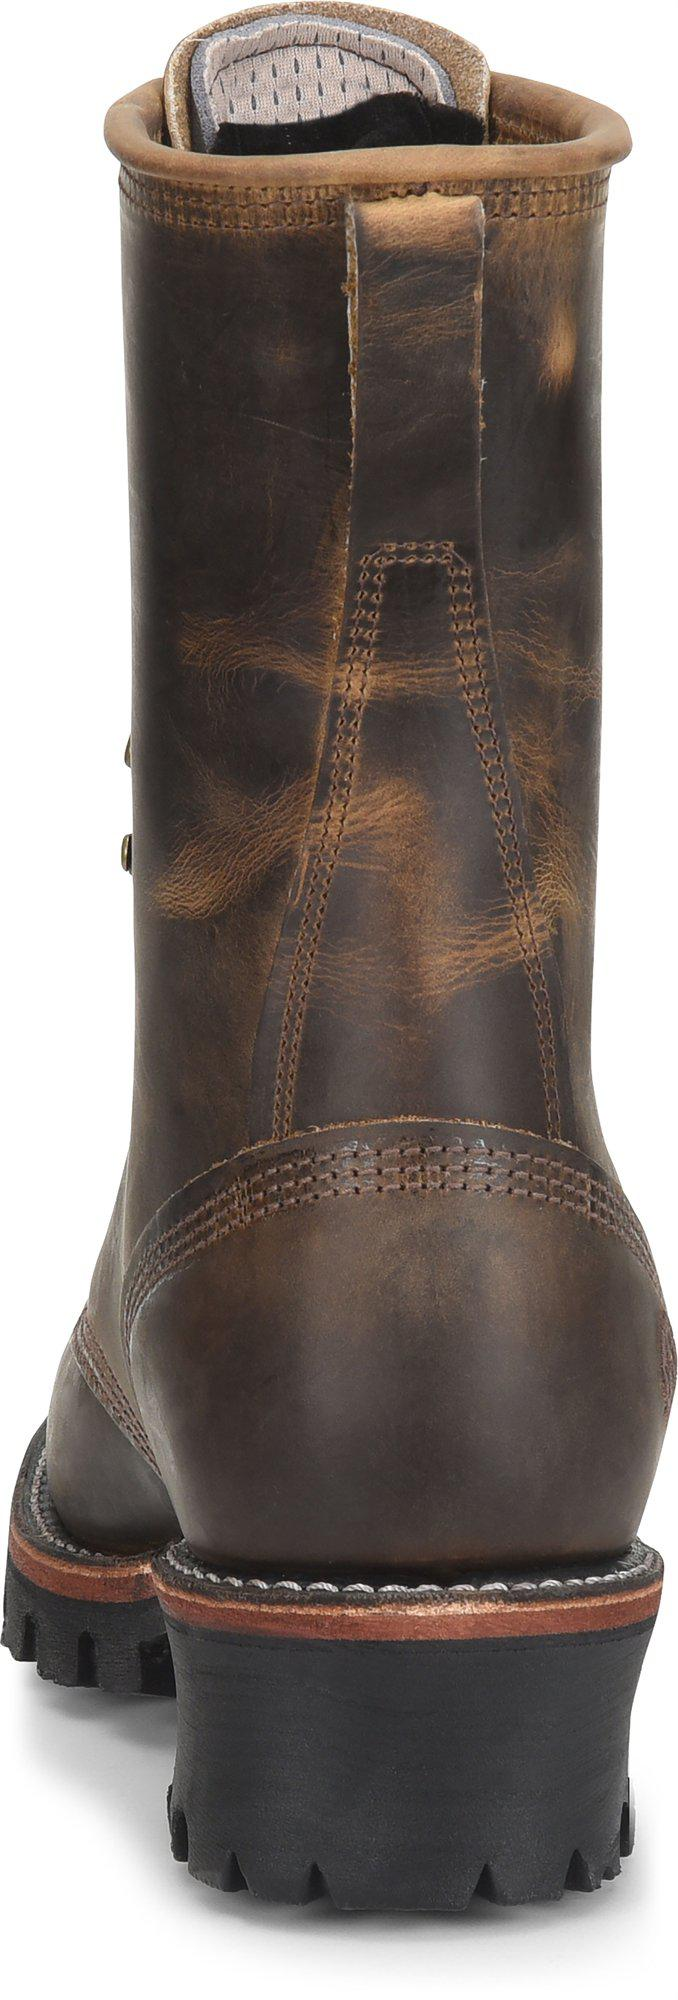 7c02e30b62f Double H Boot 10 Inch Brown Leather Logger - Final Sale for men